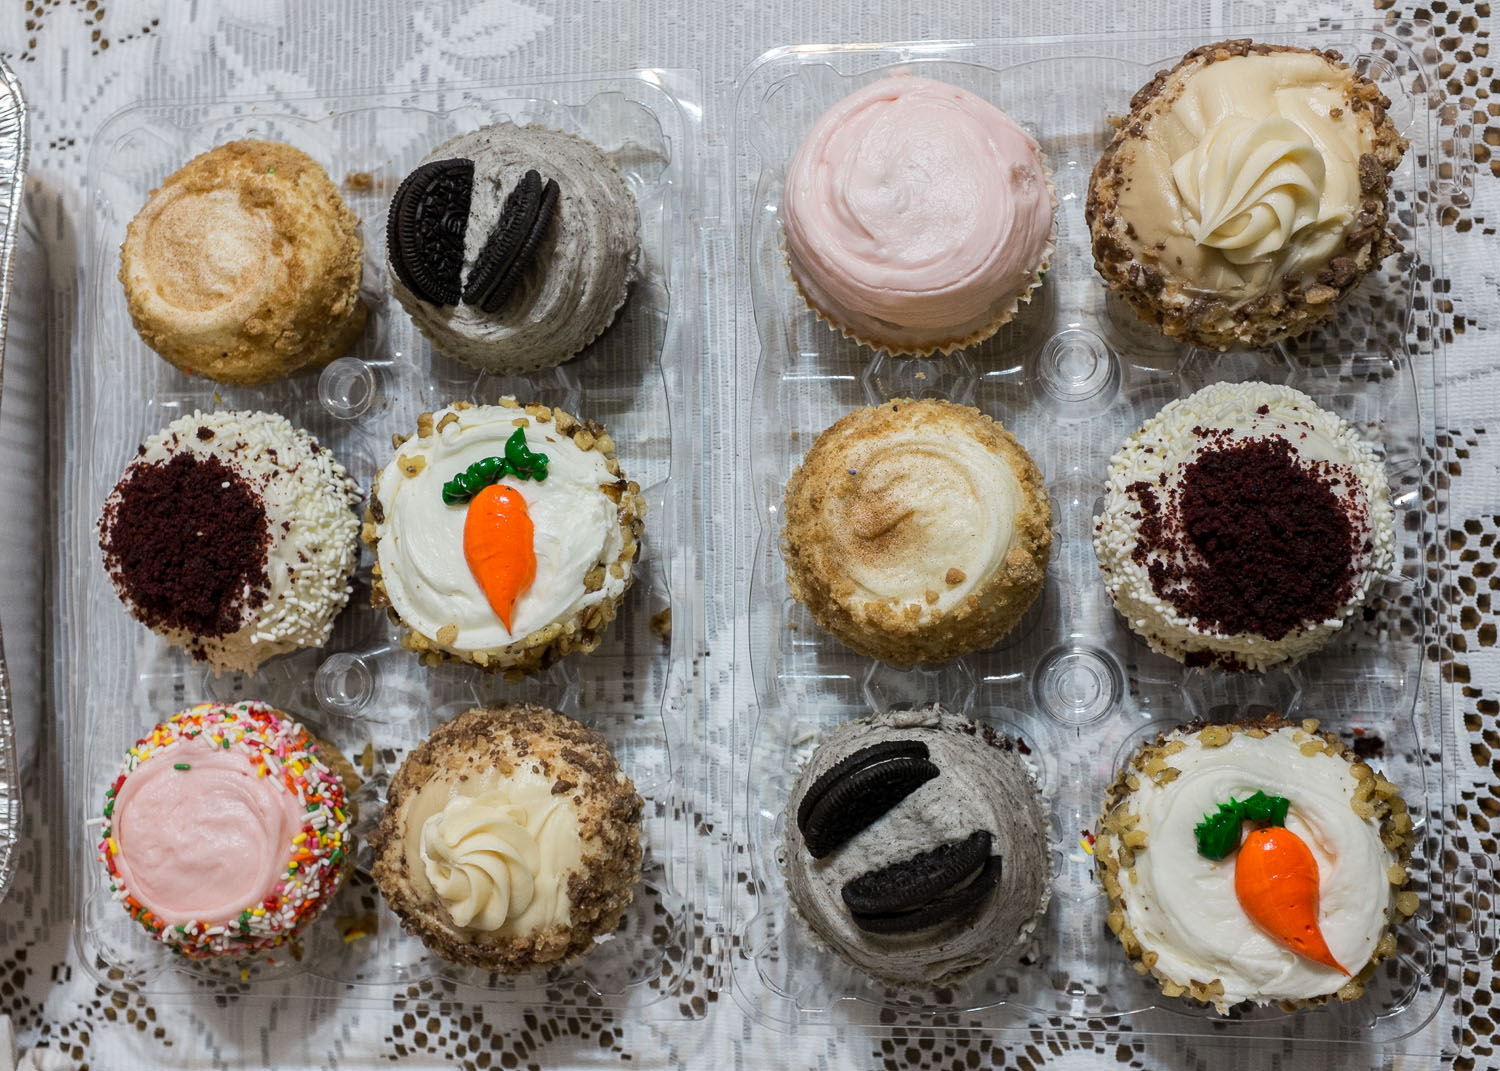 Cupcakes from Crumbs Bake Shop in Beverly Hills